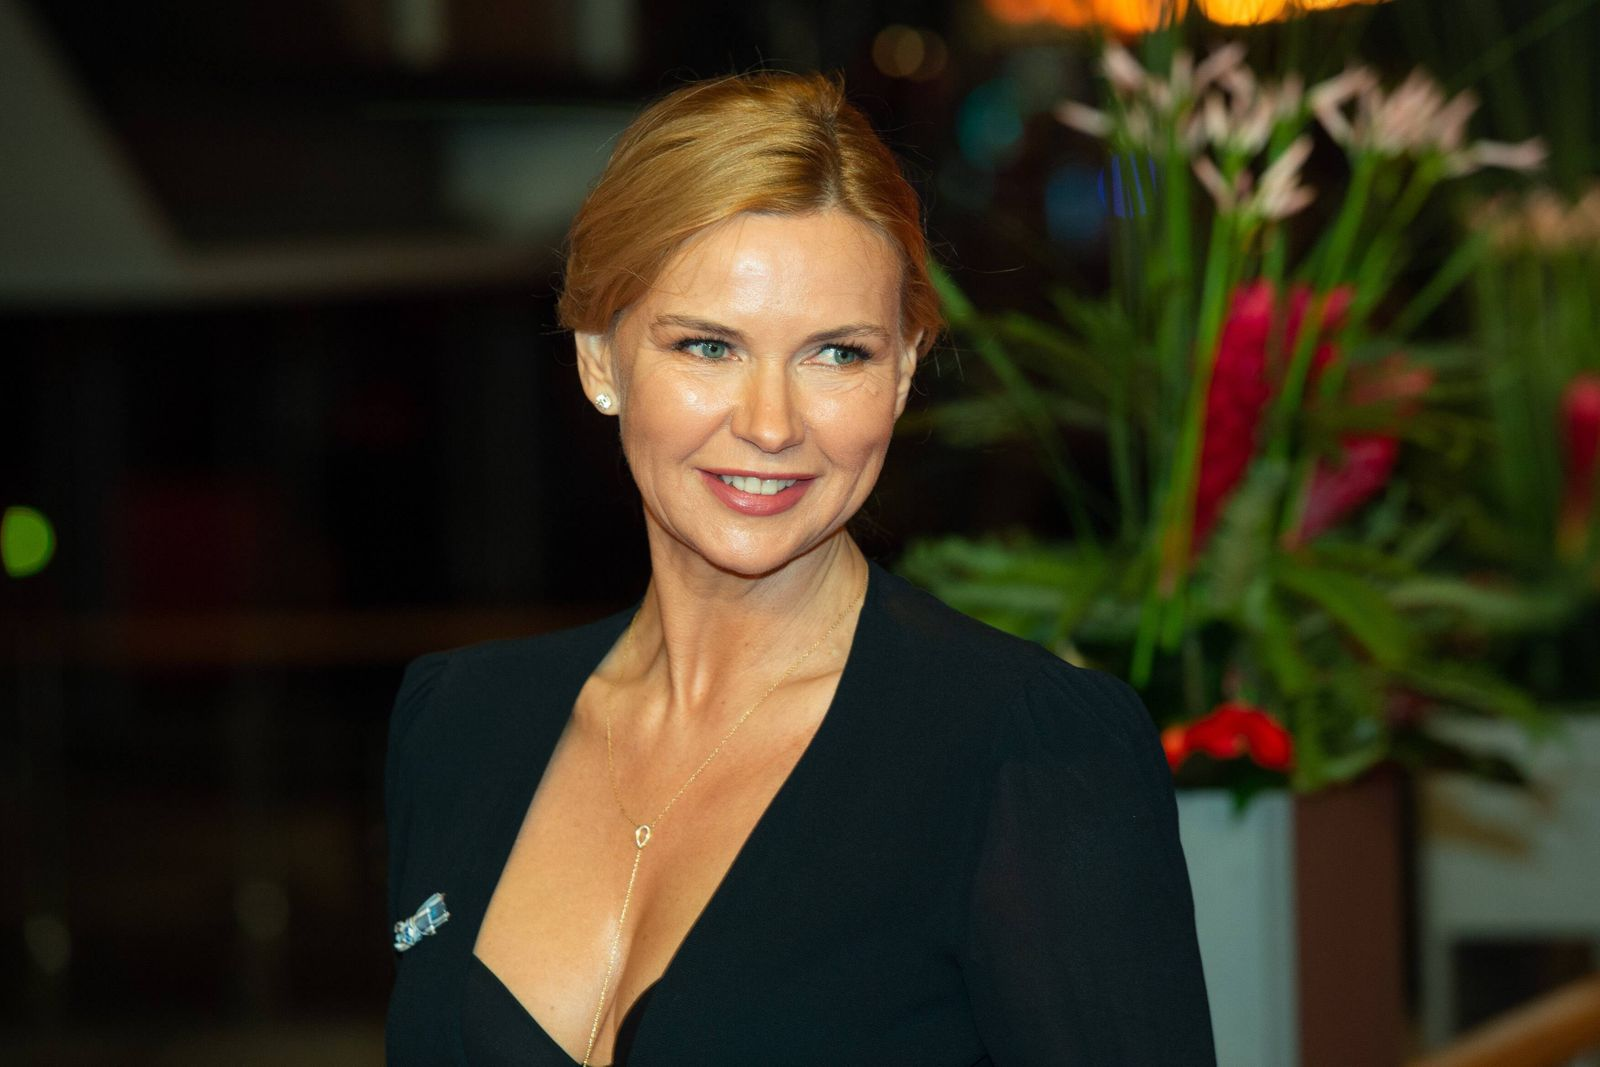 Berlin GER, Berlin, 07.02.19, Eroeffnung - Premiere - The Kindness Of Strangers Veronica Ferres, The Kindness Of Strang